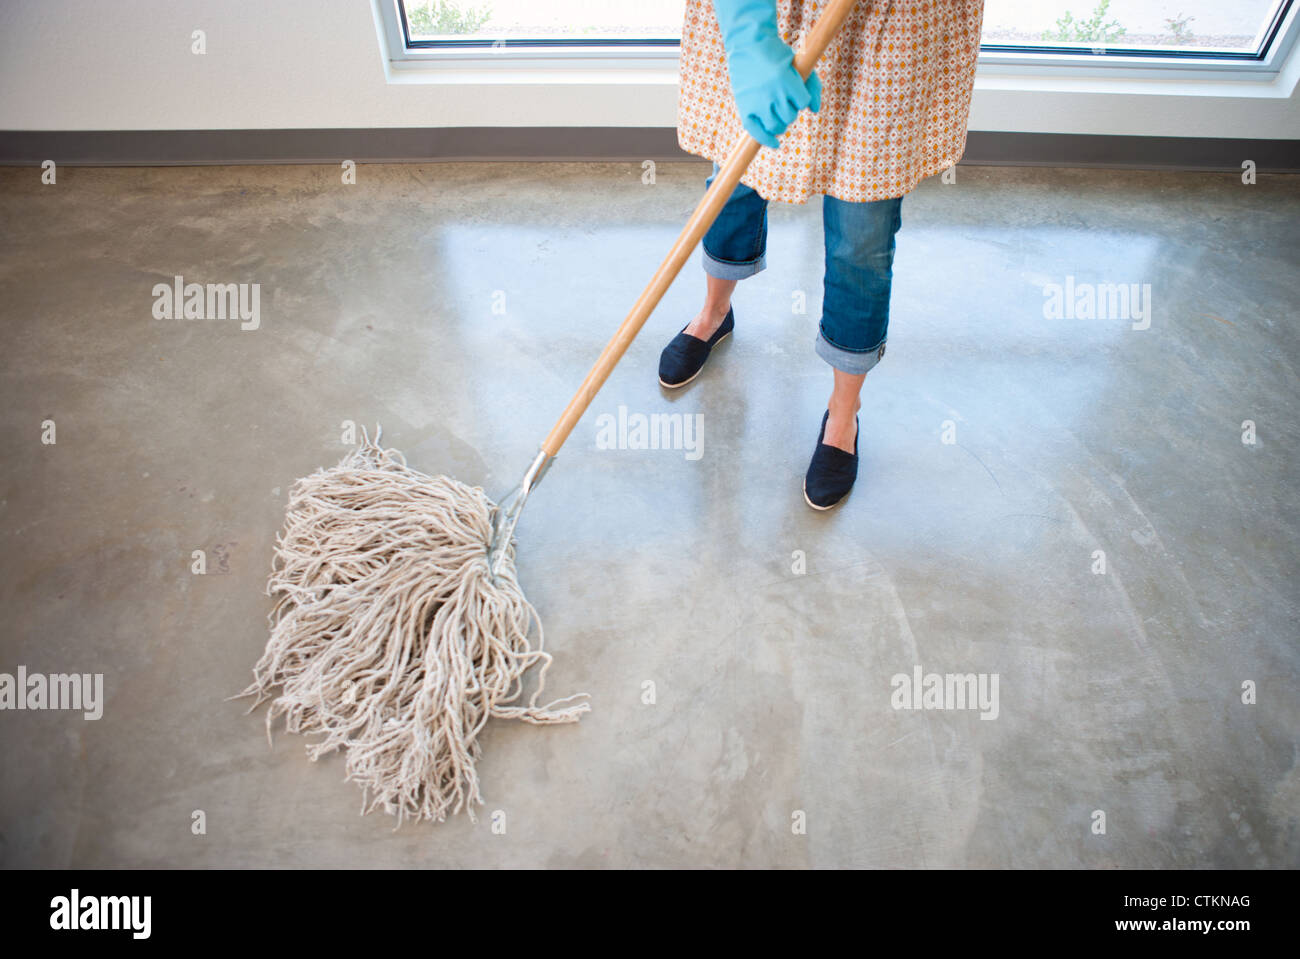 Woman cleaning a concrete floor with a wet mop, wearing apron and latex gloves. - Stock Image